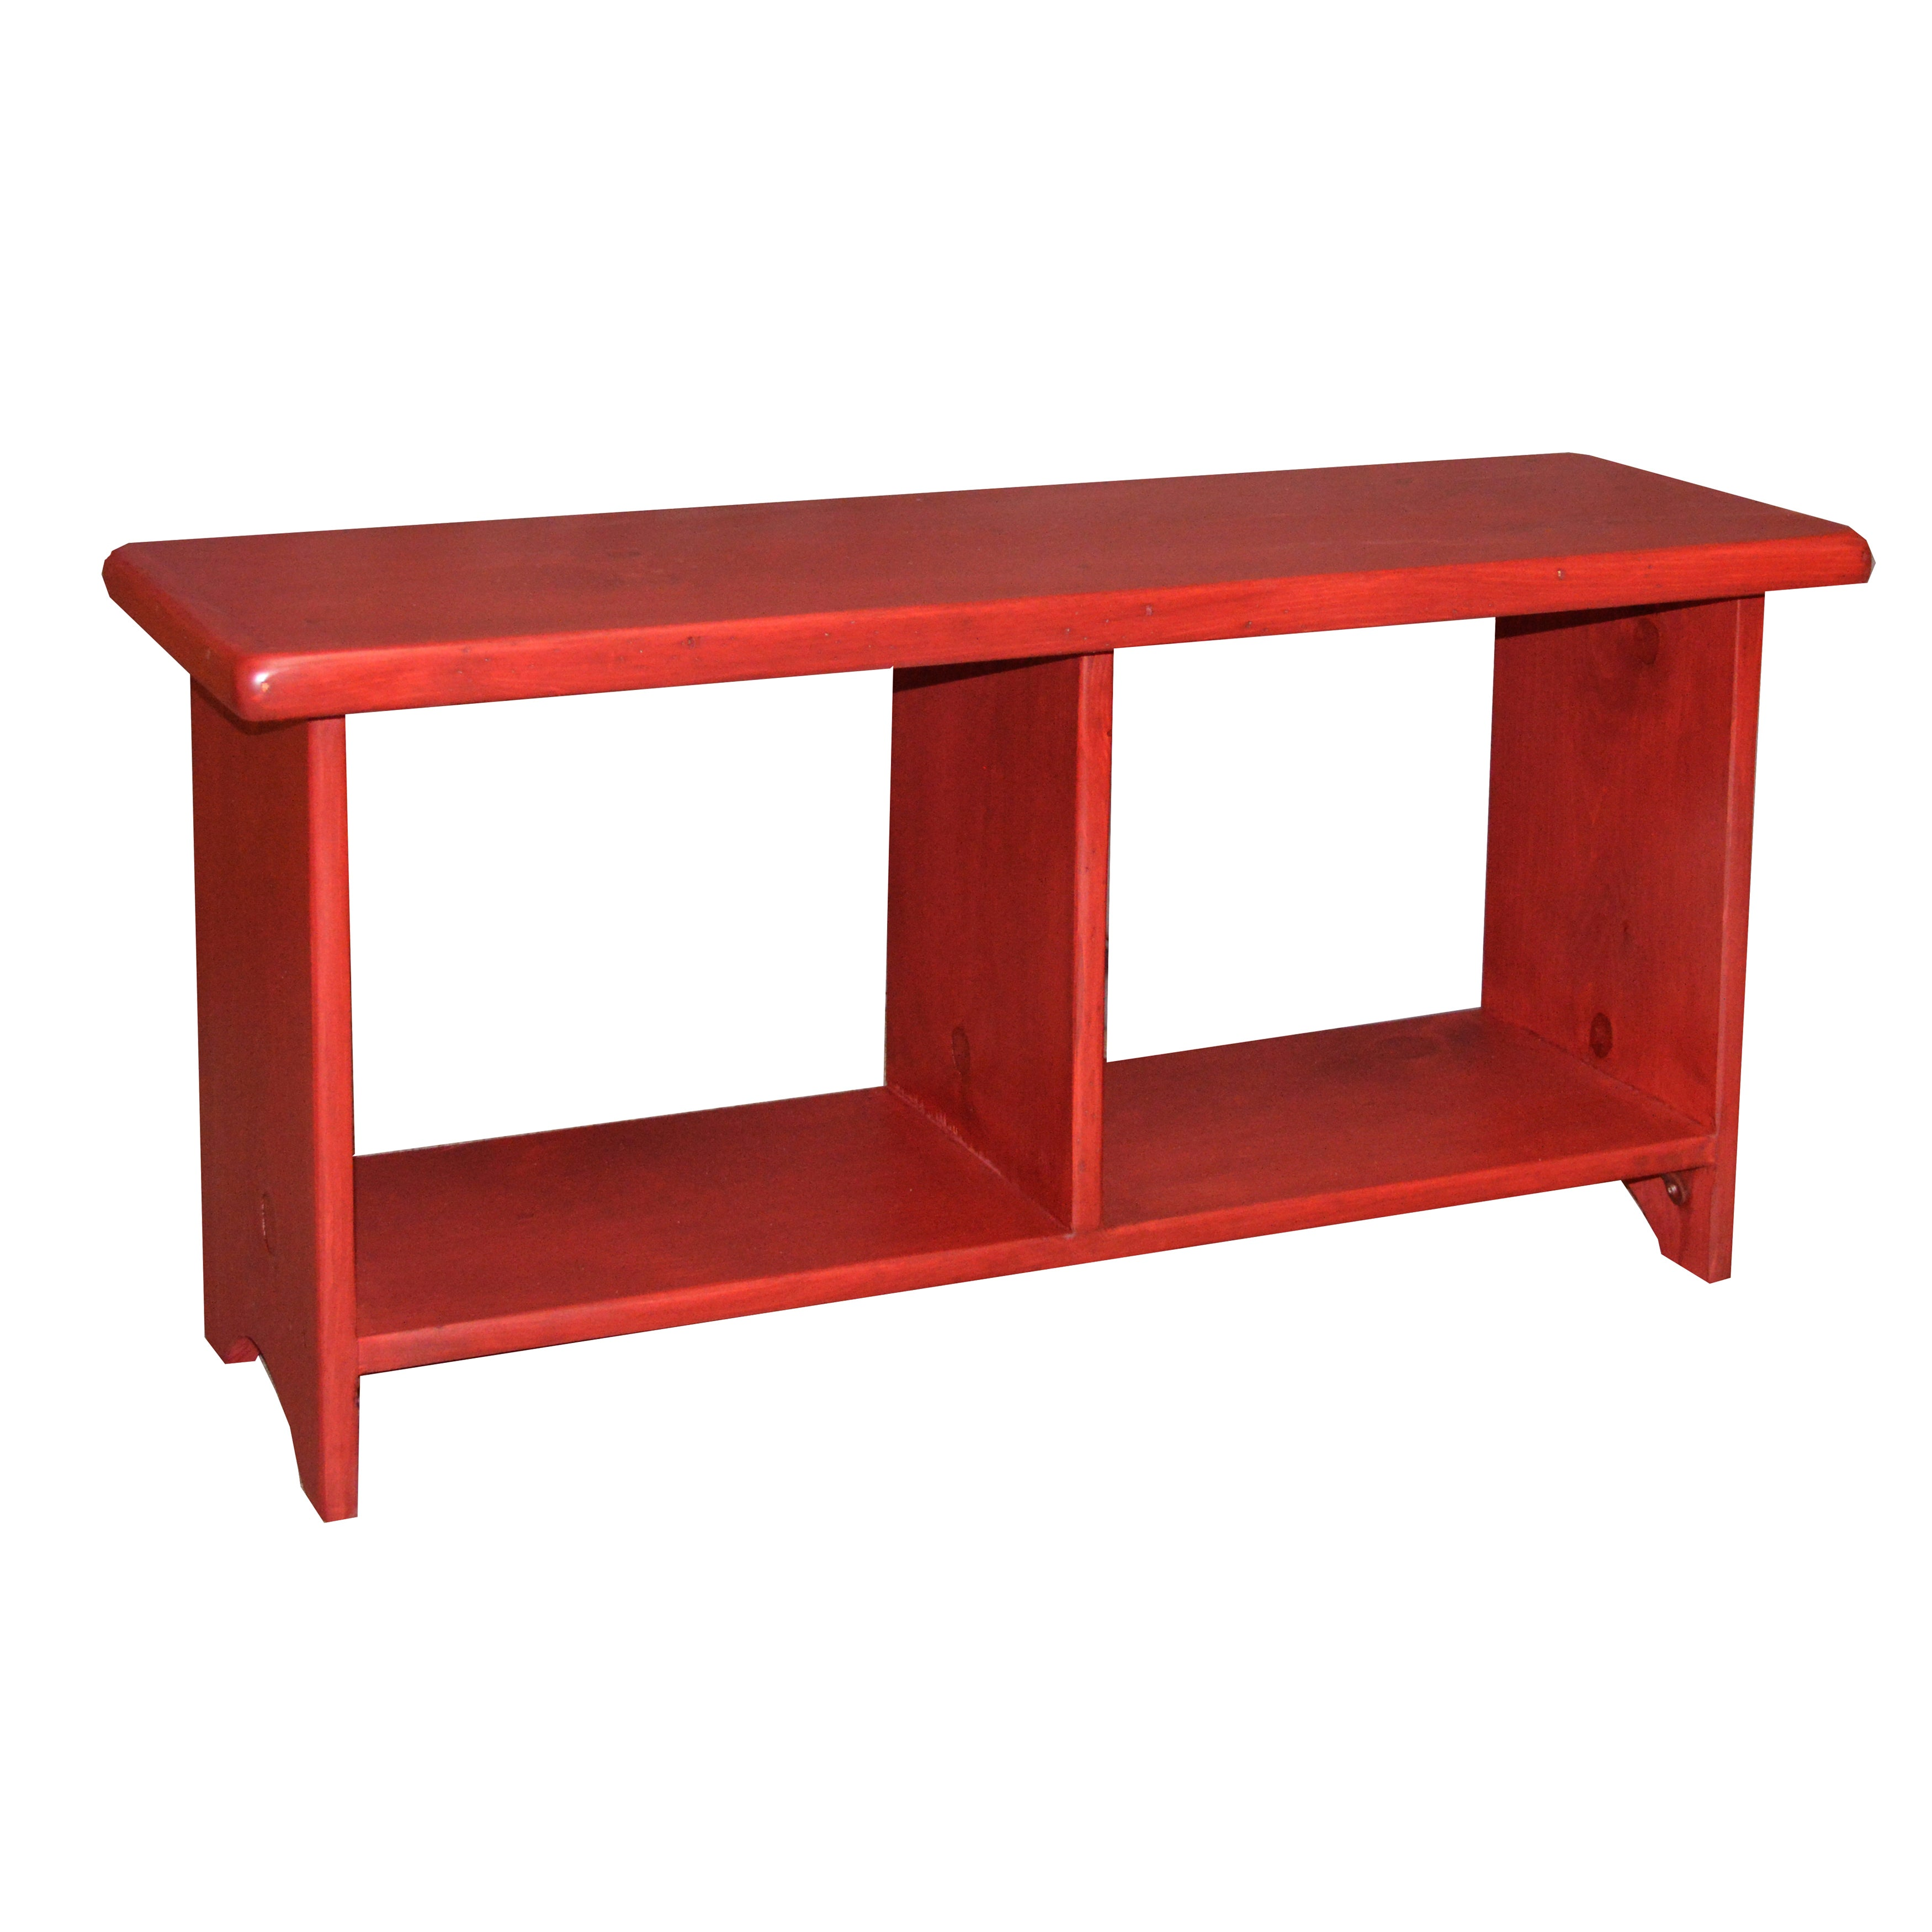 Rouge Pine Cubby Storage Bench (2 Cubby Bench), Red